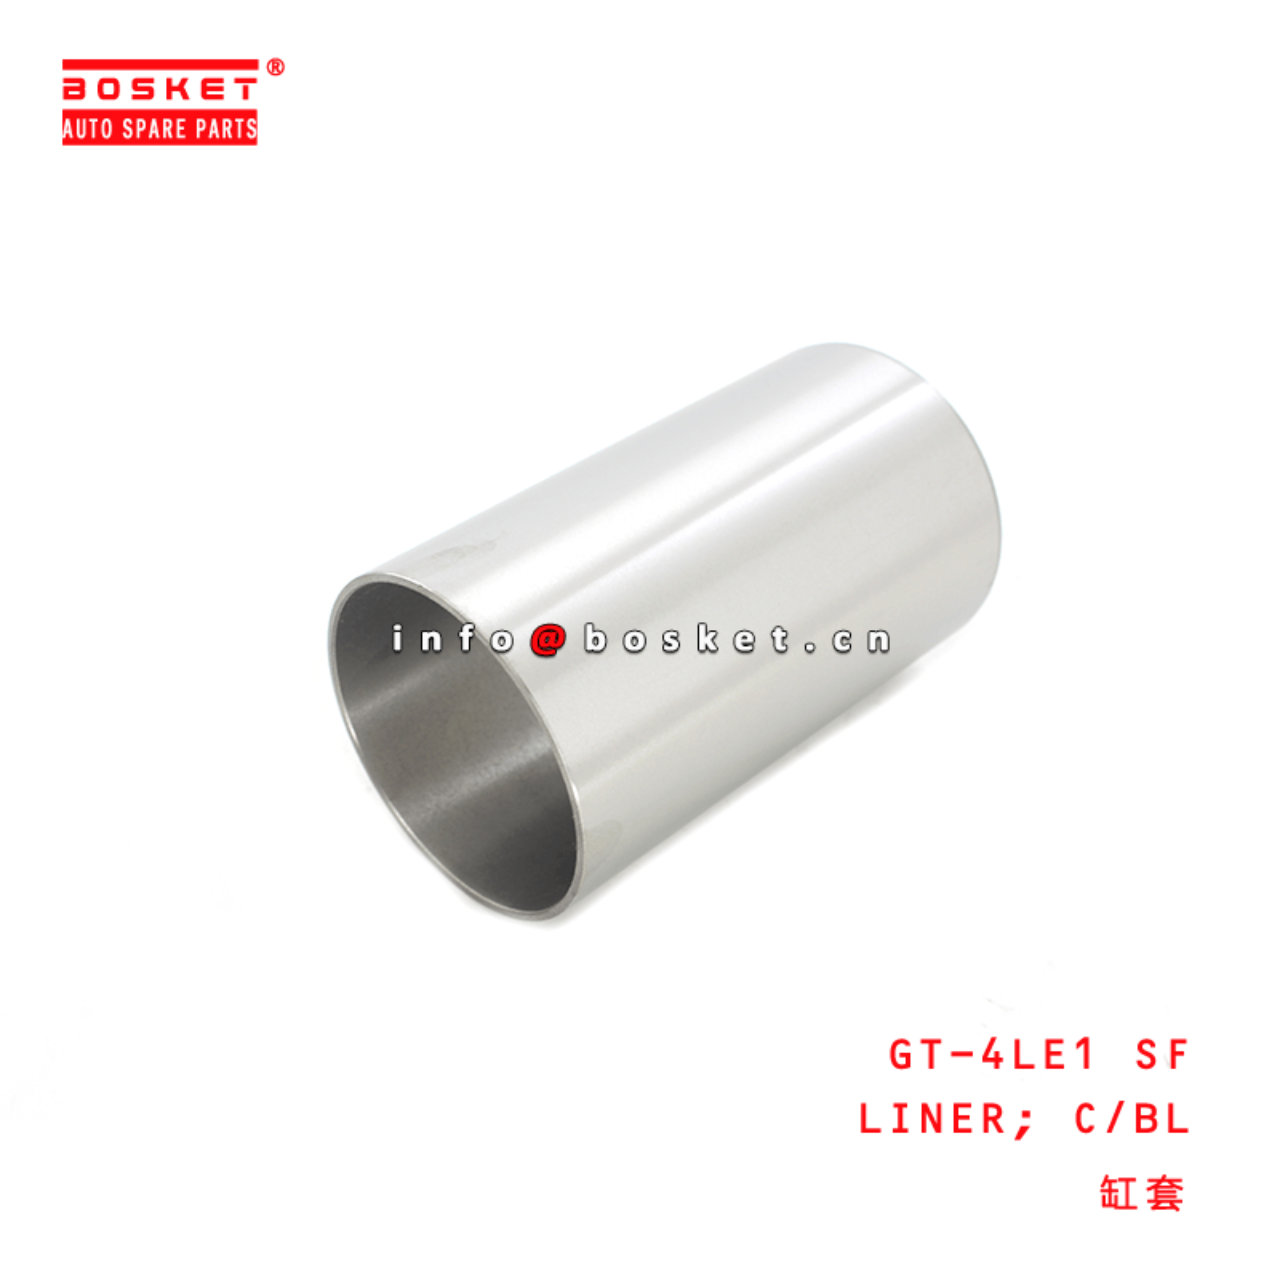 GT-4LE1 SF Cylinder Block Liner Suitable for ISUZU 4LE1